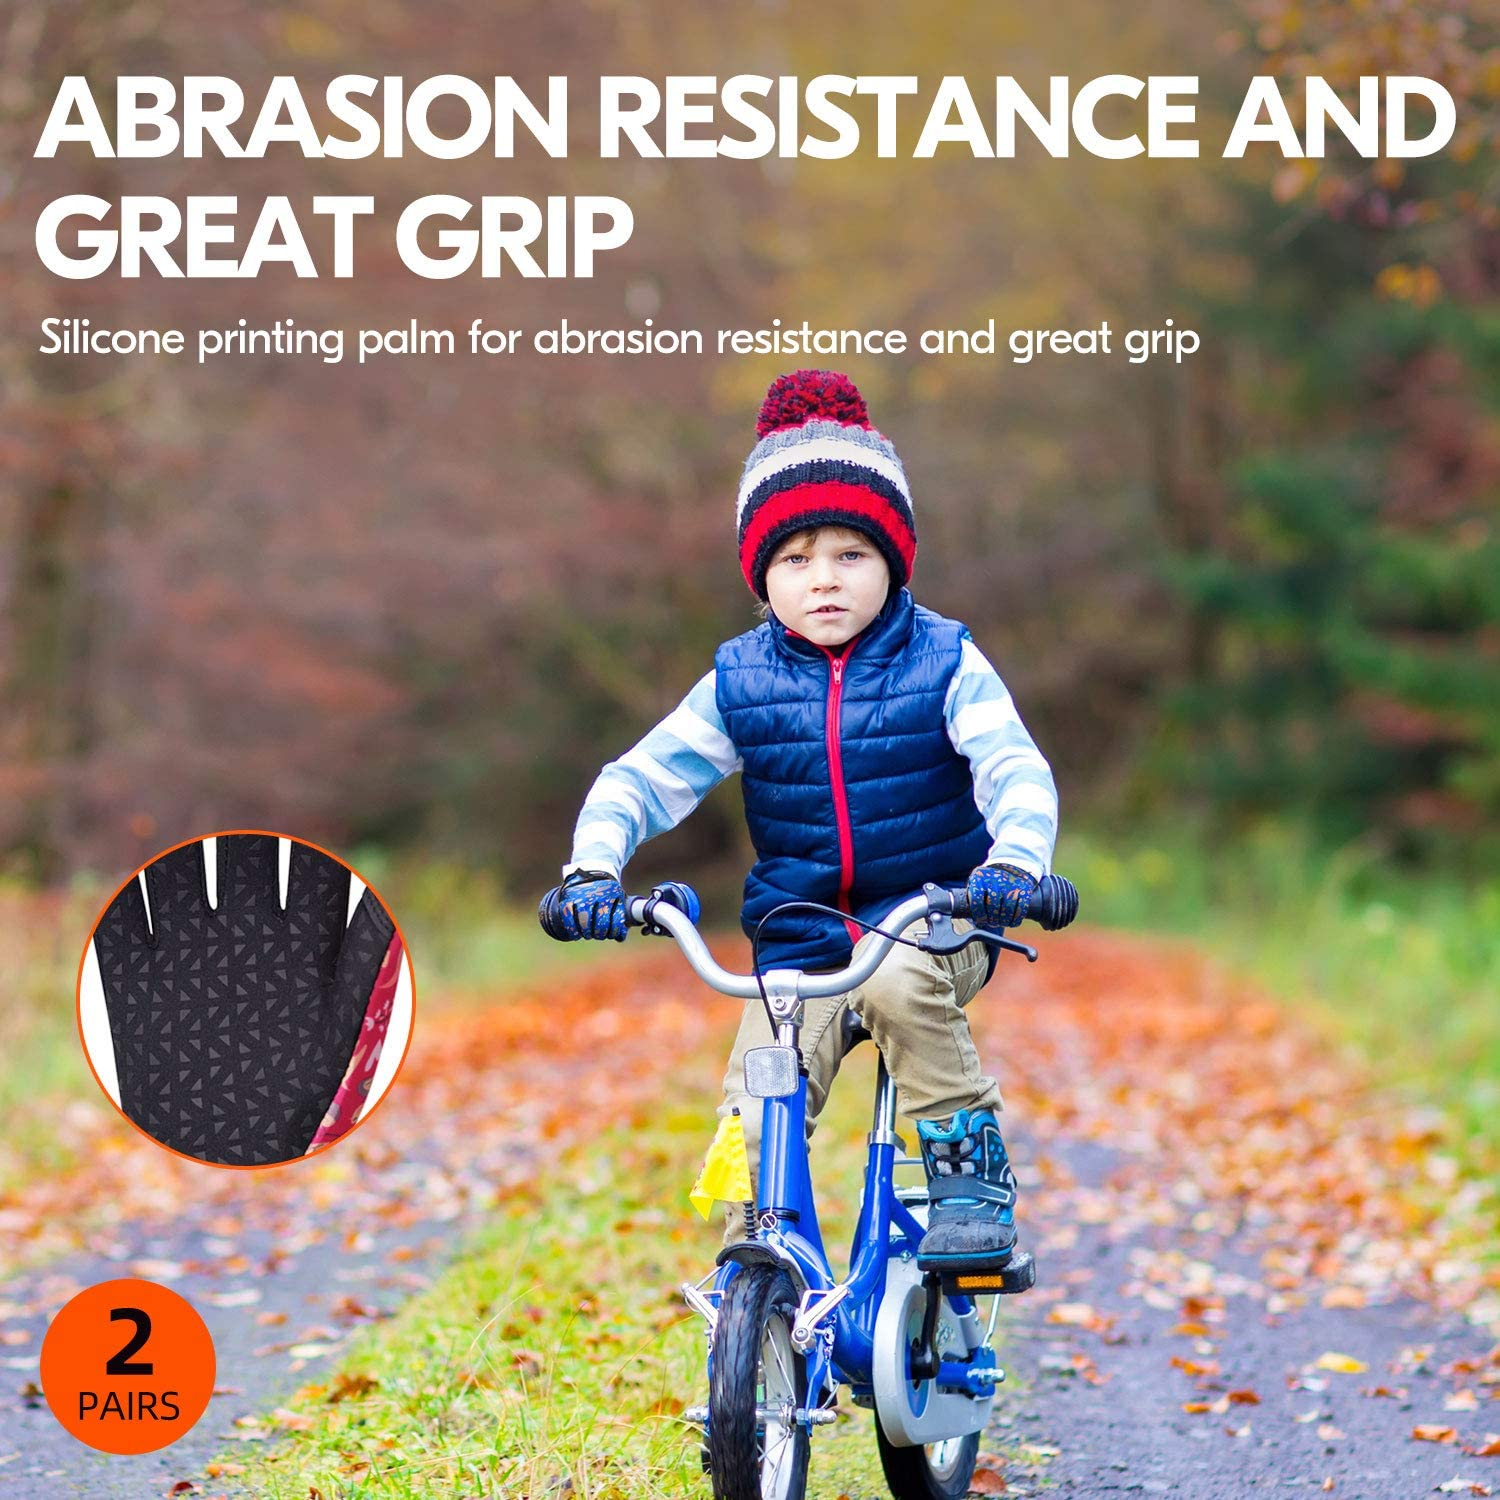 2Pairs Kids 32℉ or Above 3M Thinsulate C40 Lined Winter Outdoor Gloves Designed for Running 2Colors,SL221FW Cycling Vgo.. Driving /& Texting